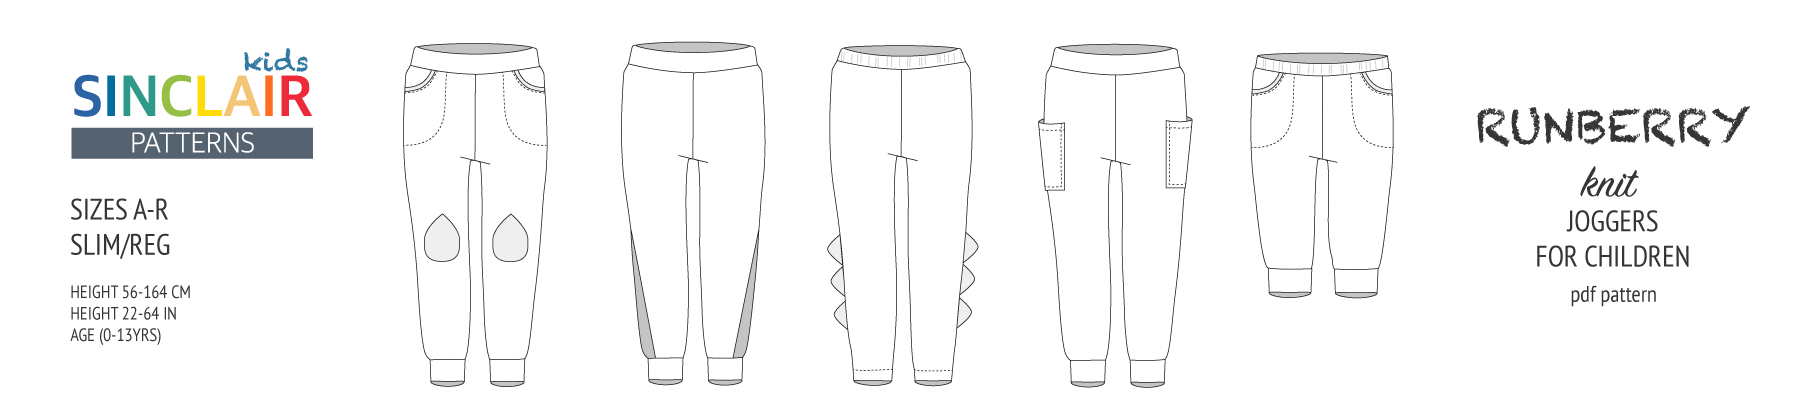 Pdf sewing pattern Runberry joggers